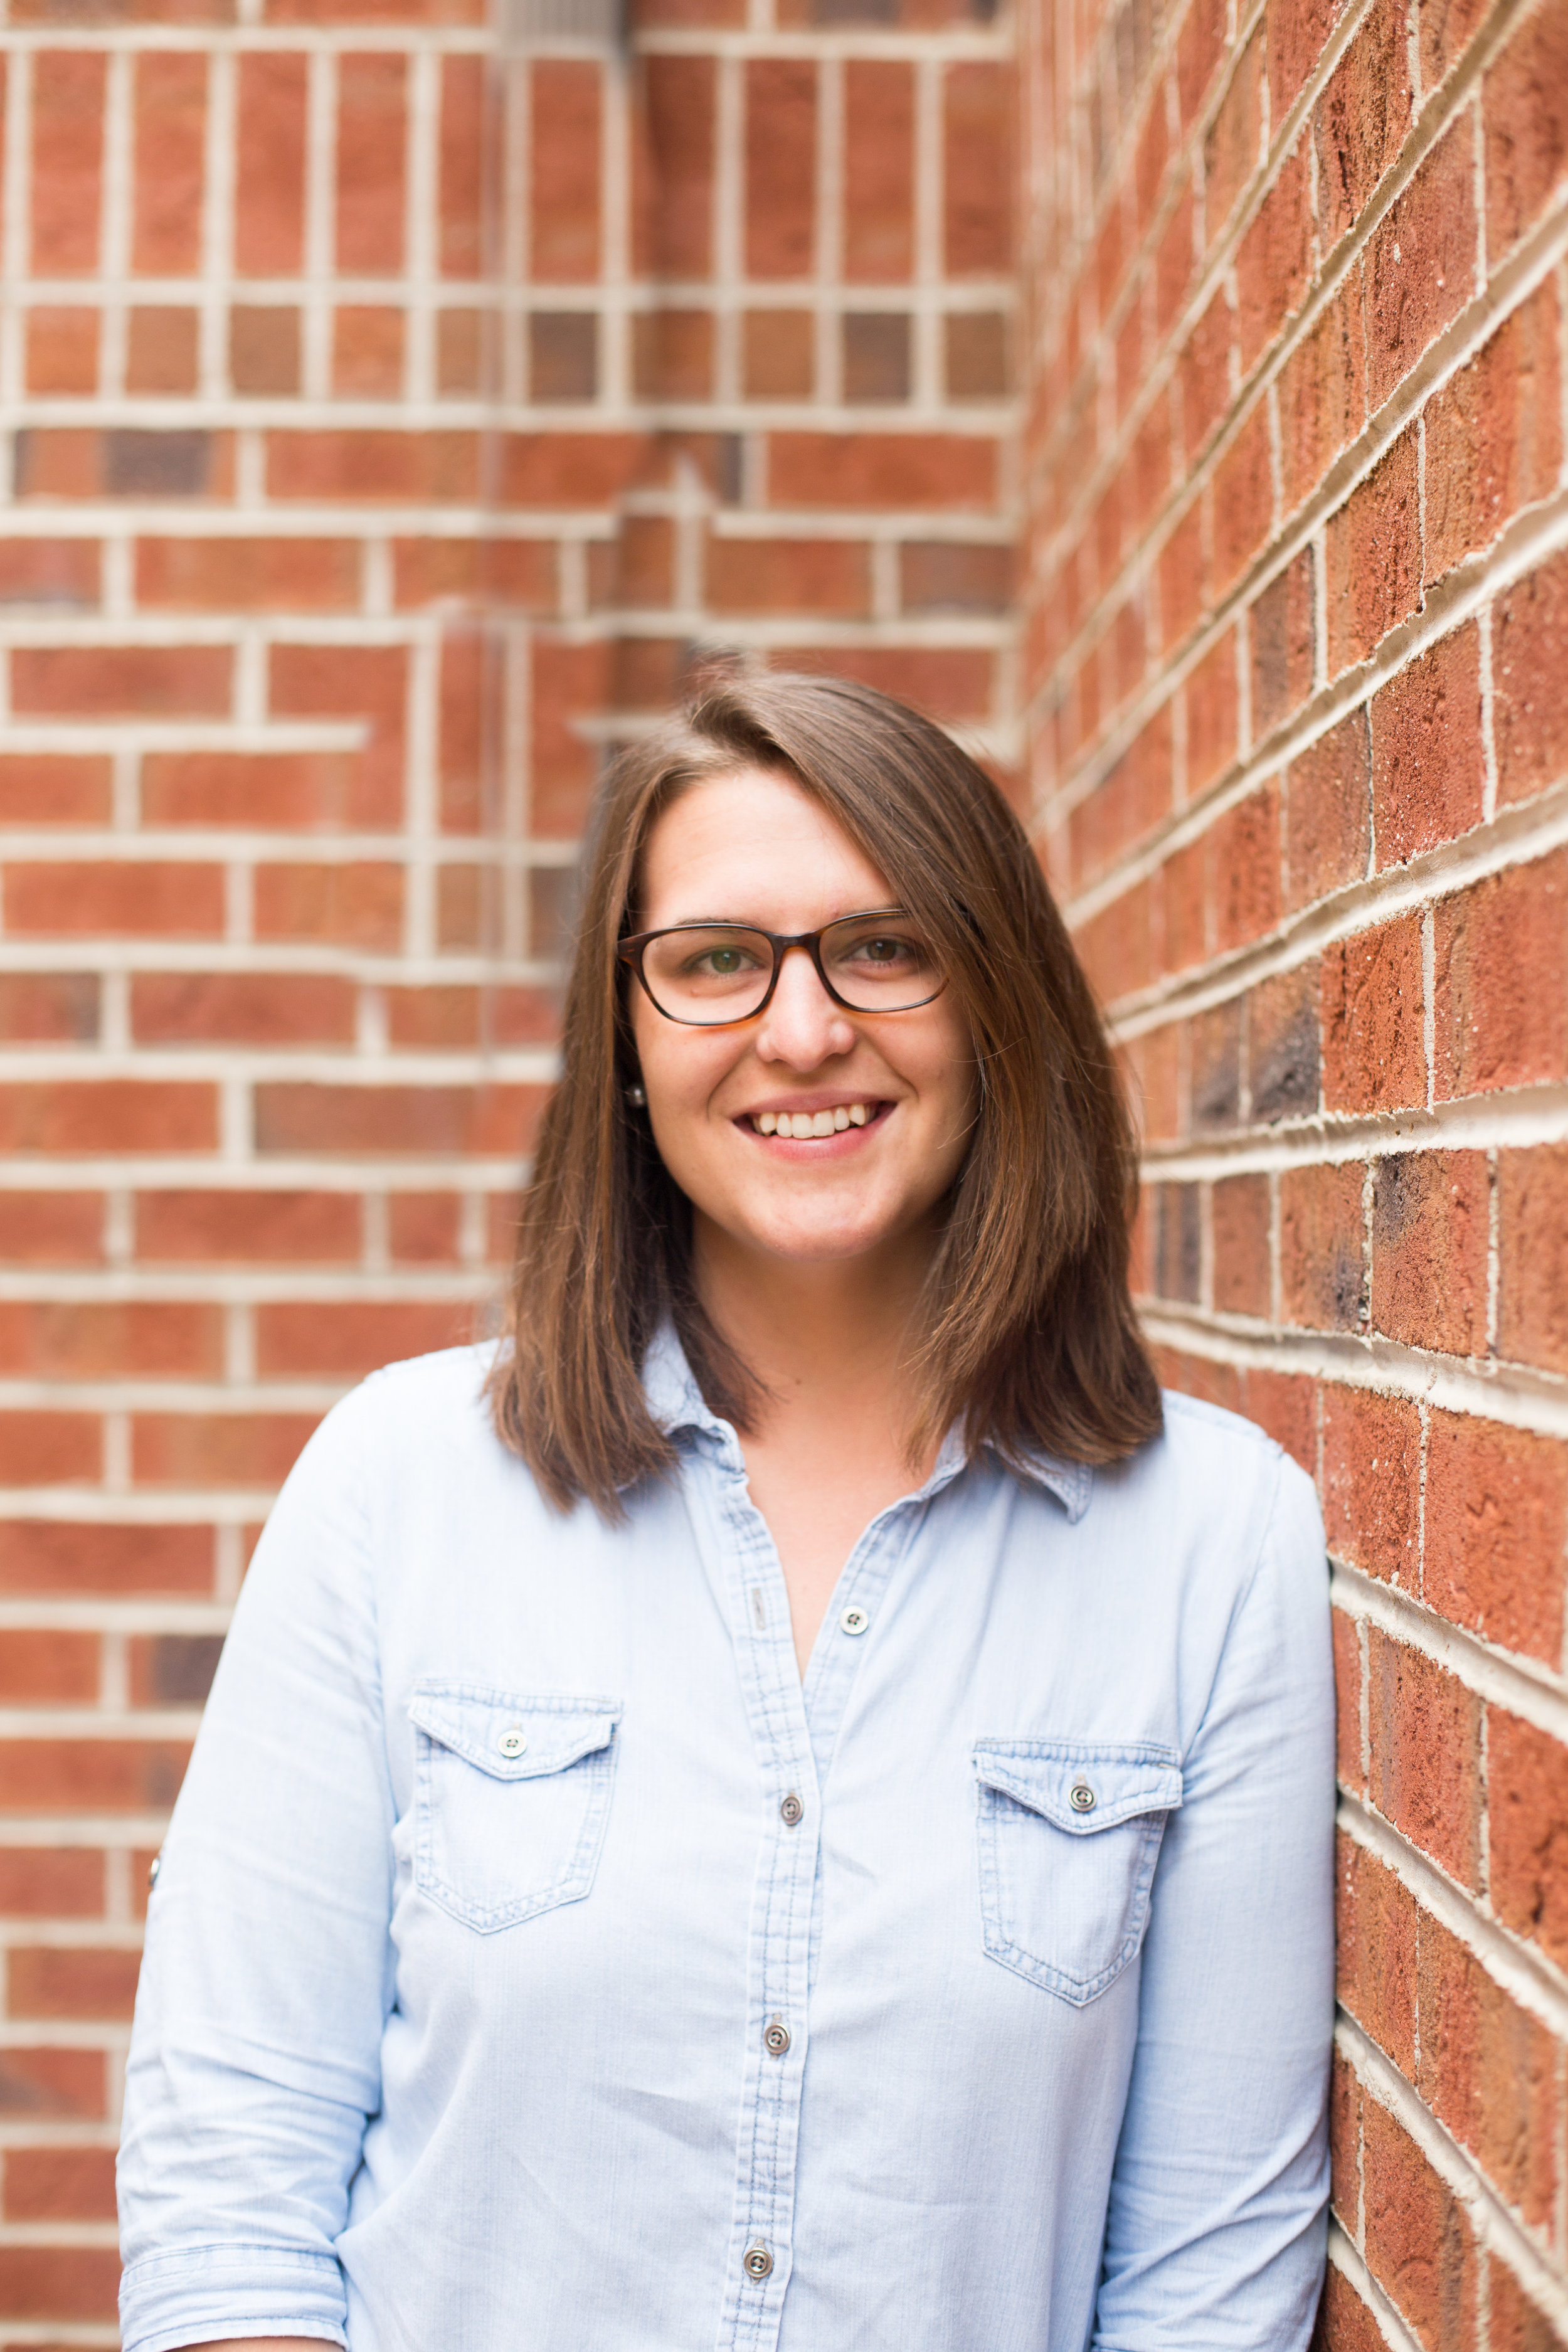 Rebekah Cain - Director of Children's and Young Adults' Ministries